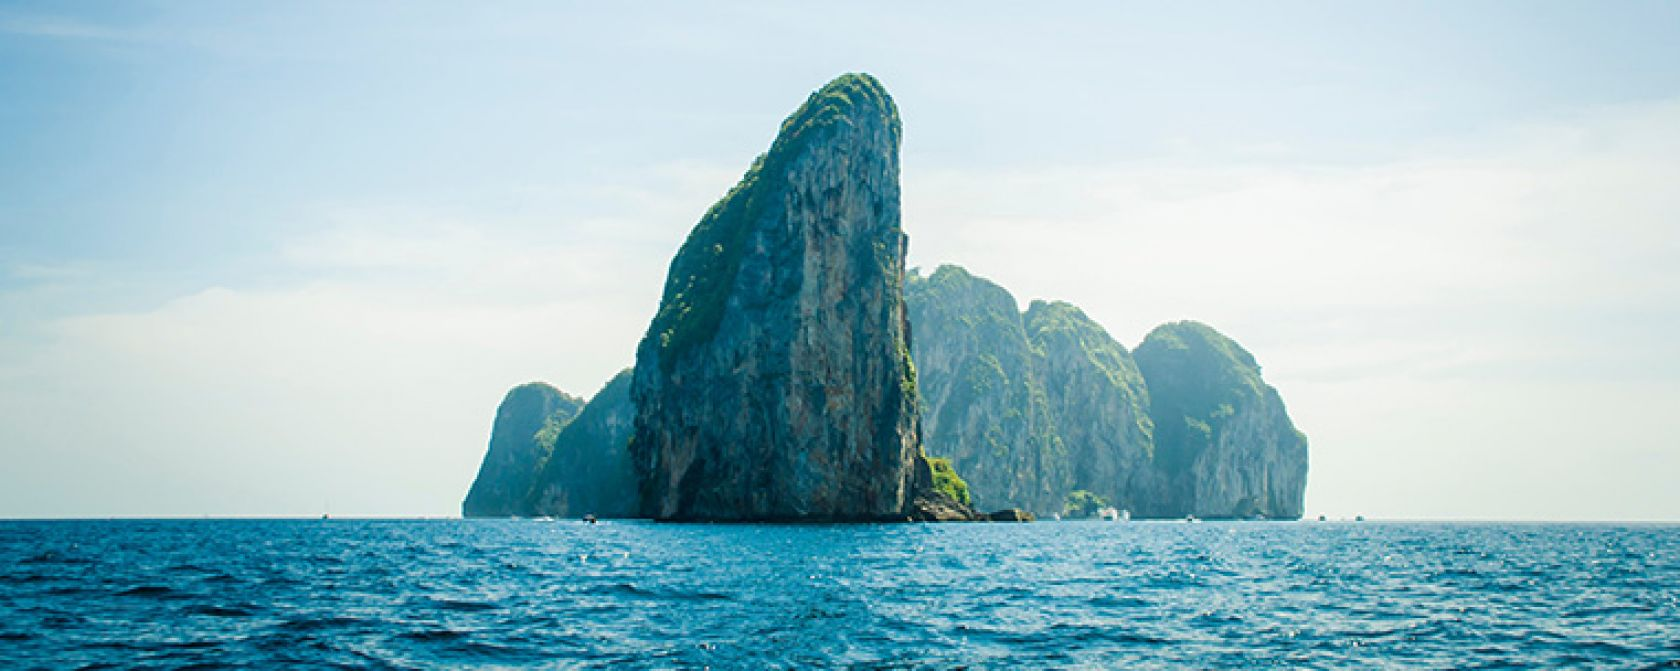 Speak to Our Experts about Your Perfect Ha Long Bay Cruise